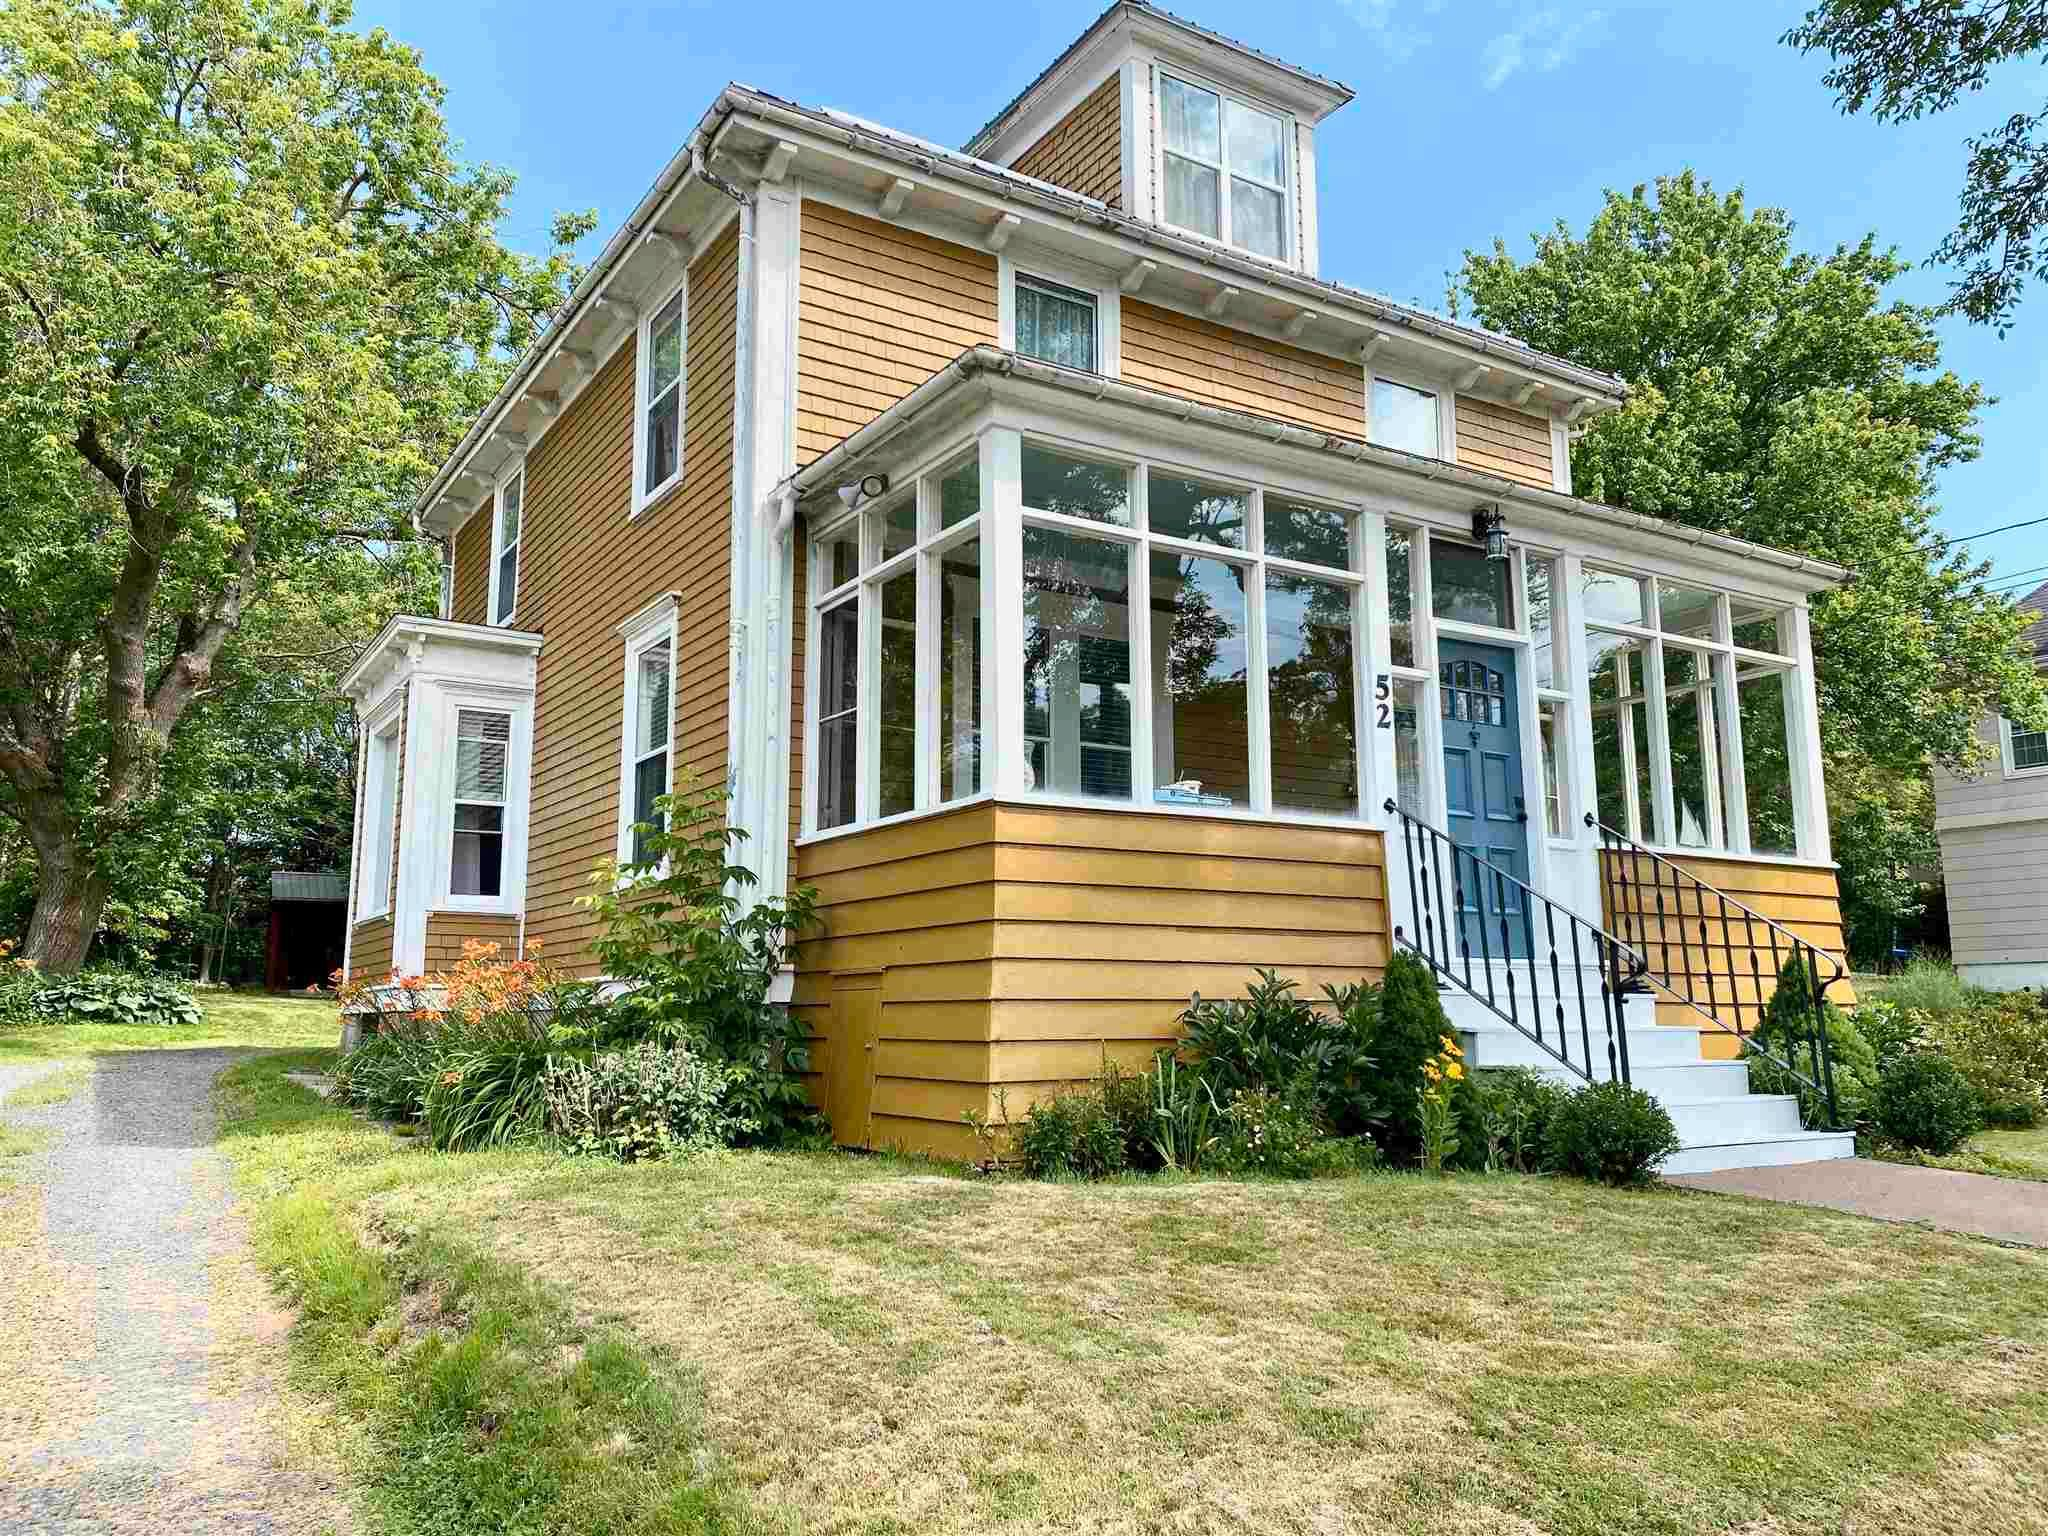 Main Photo: 52 Faulkland Street in Pictou: 107-Trenton,Westville,Pictou Residential for sale (Northern Region)  : MLS®# 202118525